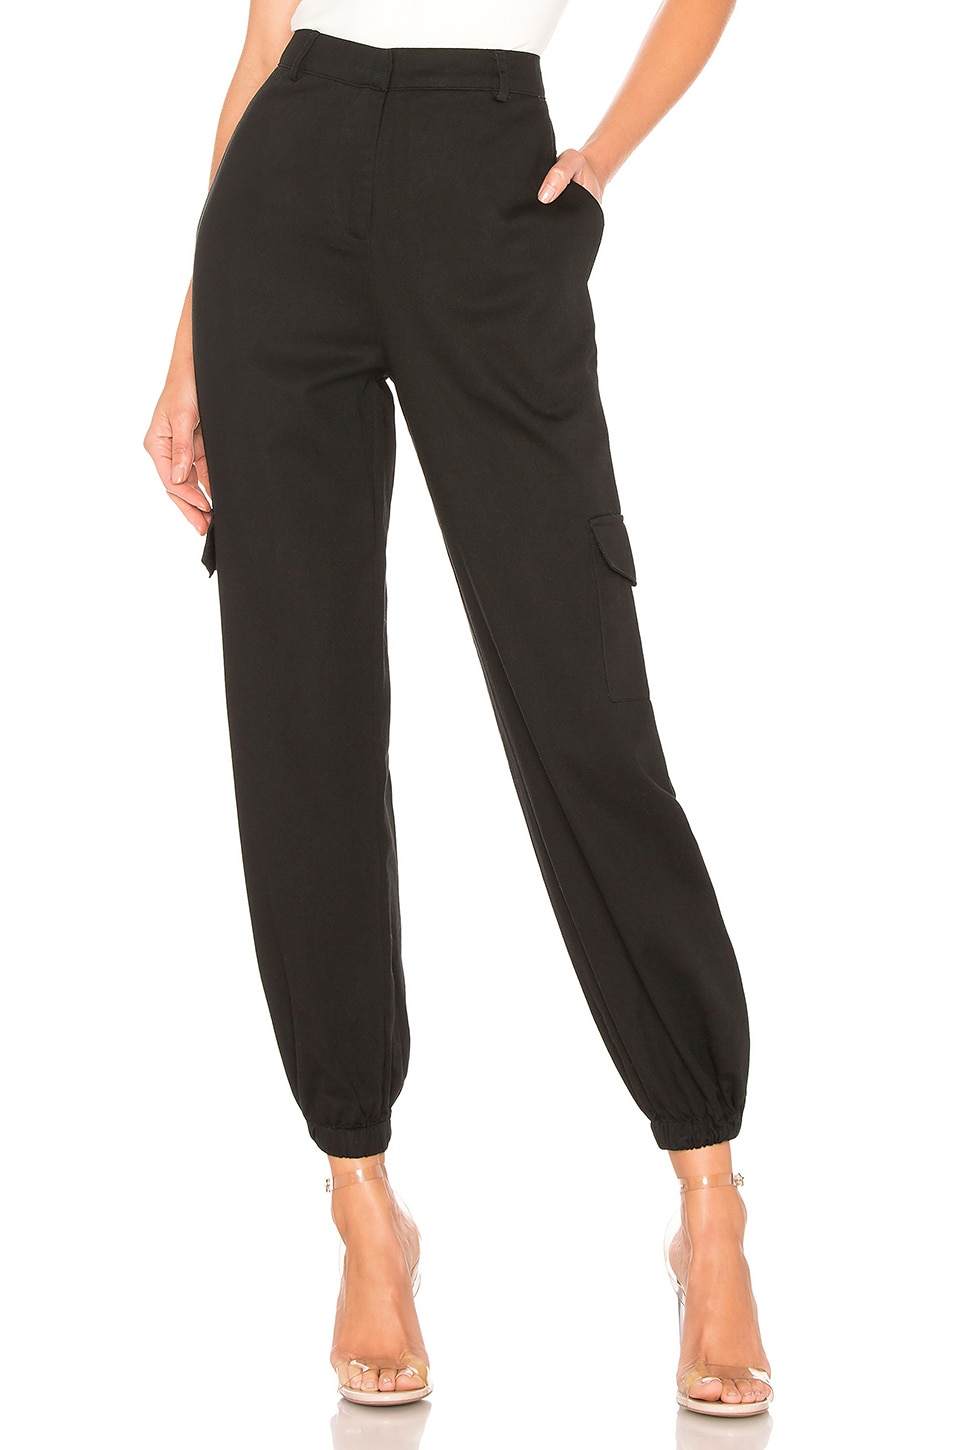 Lovers + Friends Karter Pants in Black